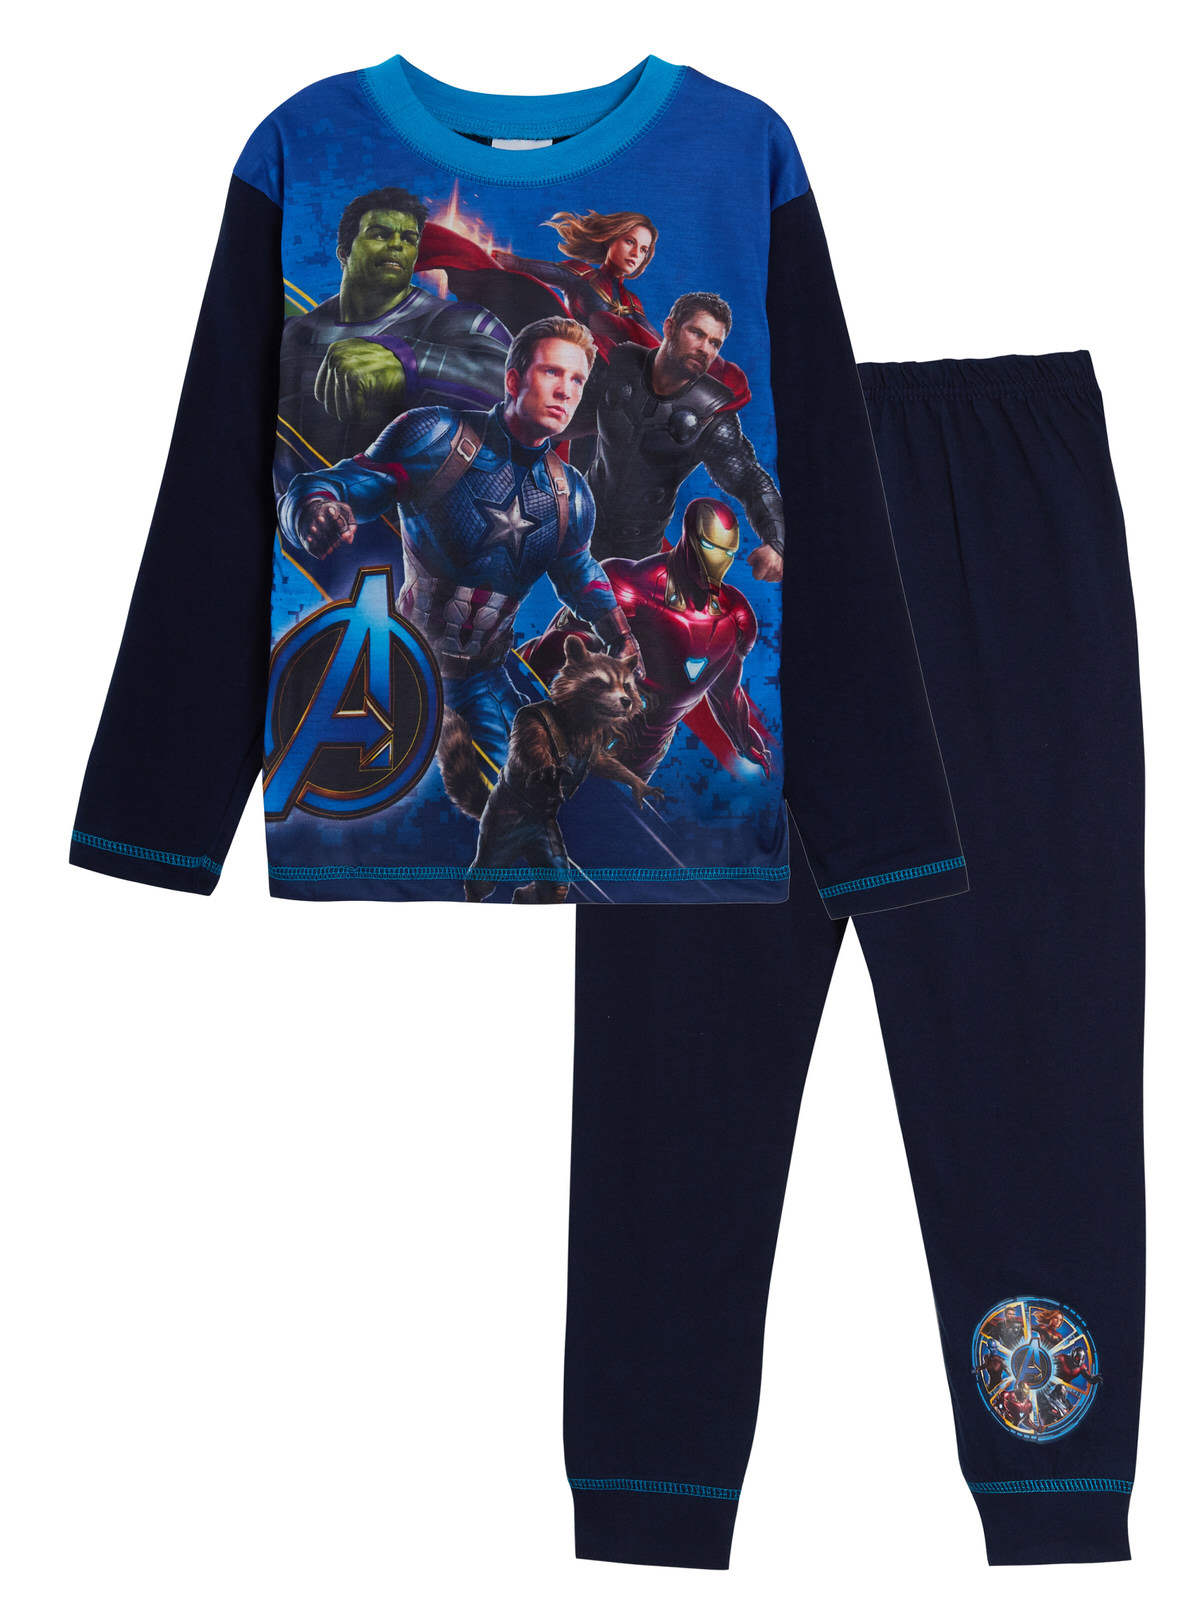 Sizes 4-10 Years Boy/'s Official MARVEL COMICS Pyjamas //AVENGERS Cotton PJs